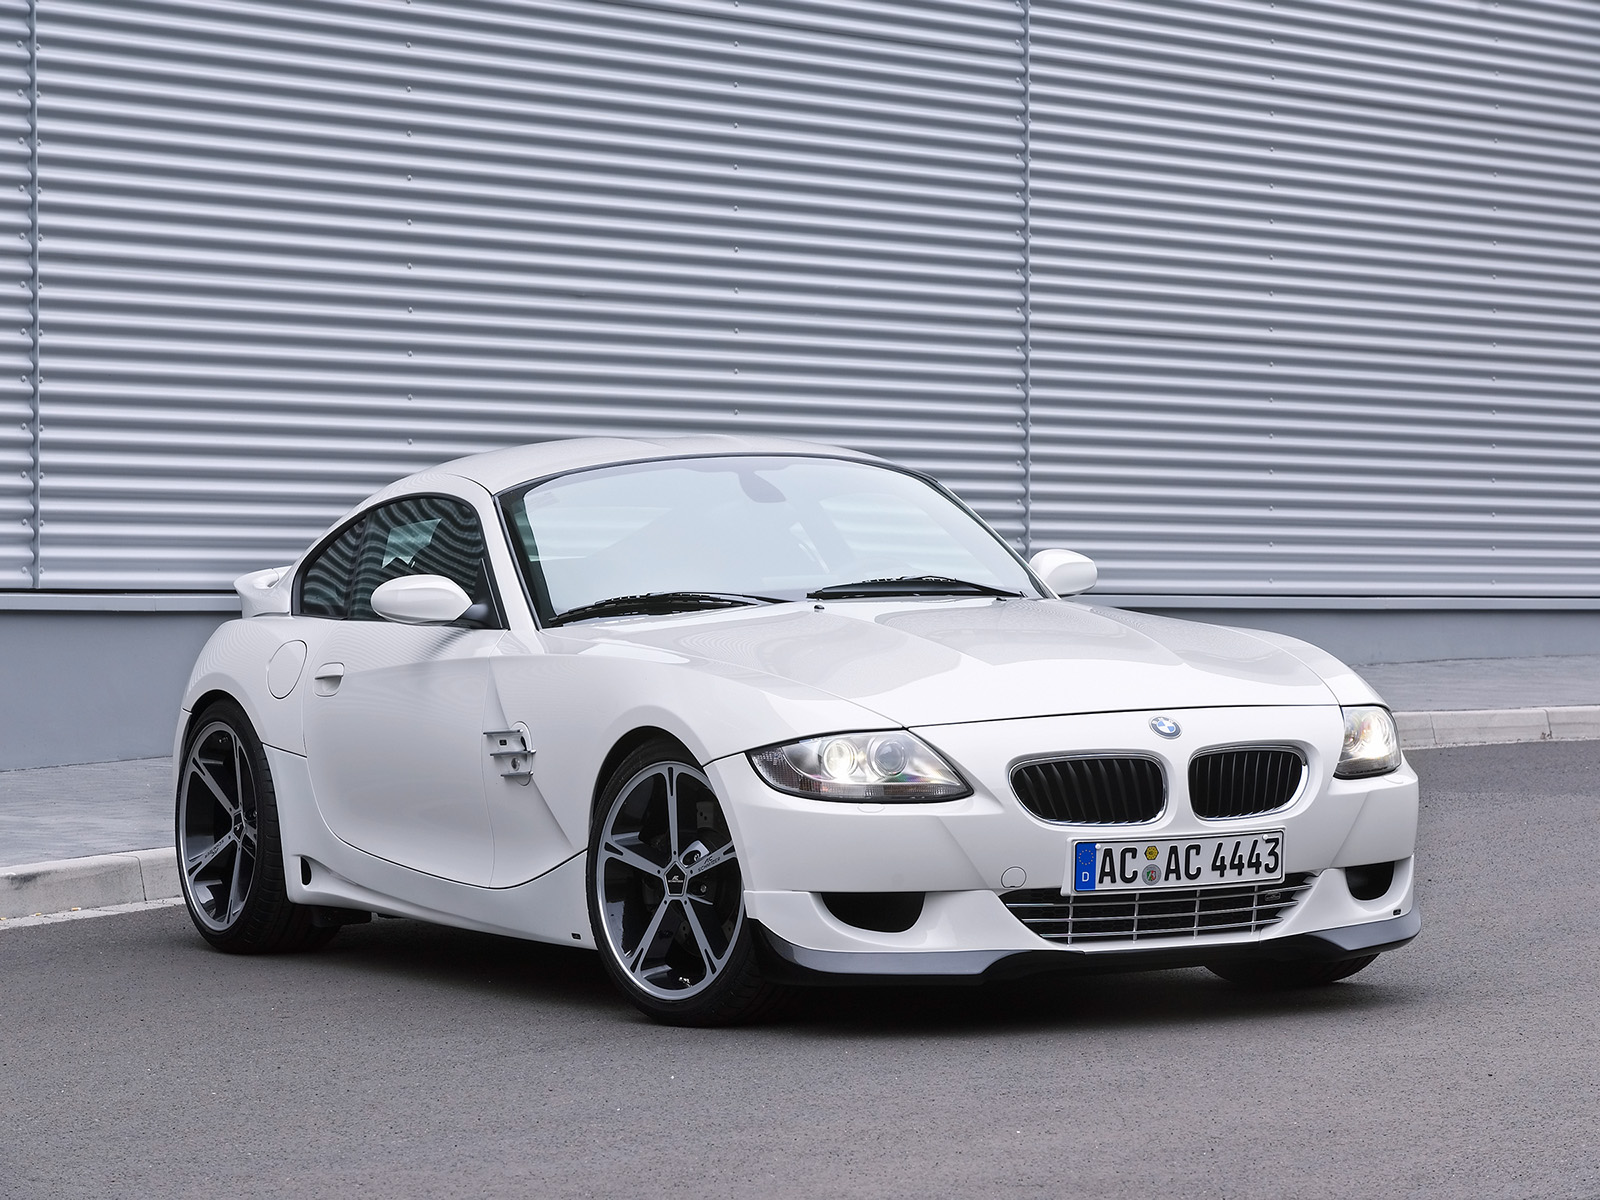 BMW Z M roadster and Z4 M coupe specifications and buyers guide